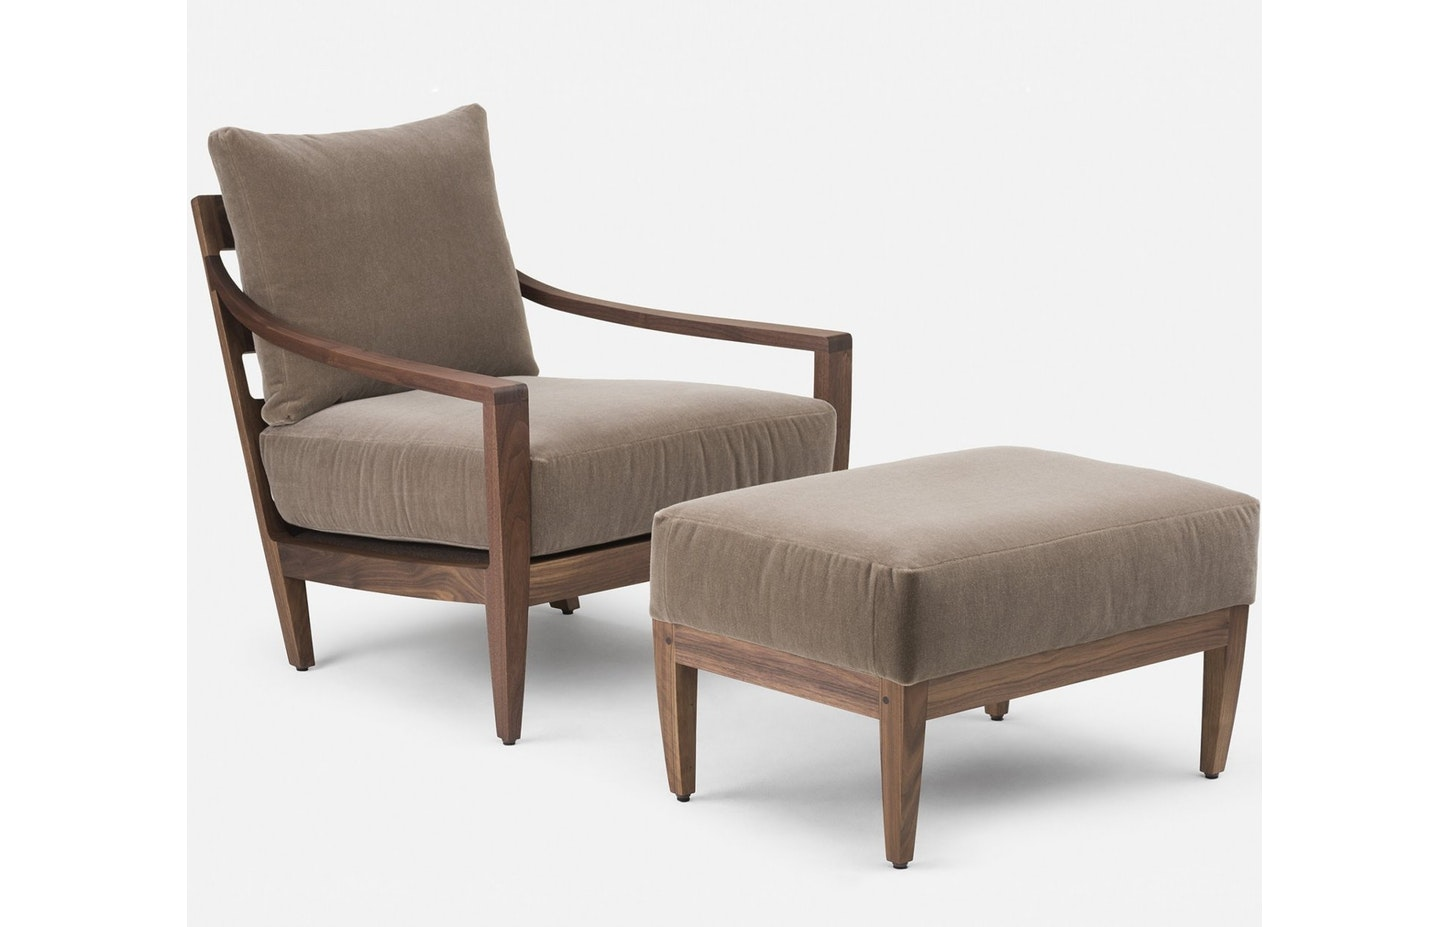 excellent low lounge chair matthew hilton | Modern Armchairs by Contemporary Designers at Haute Living